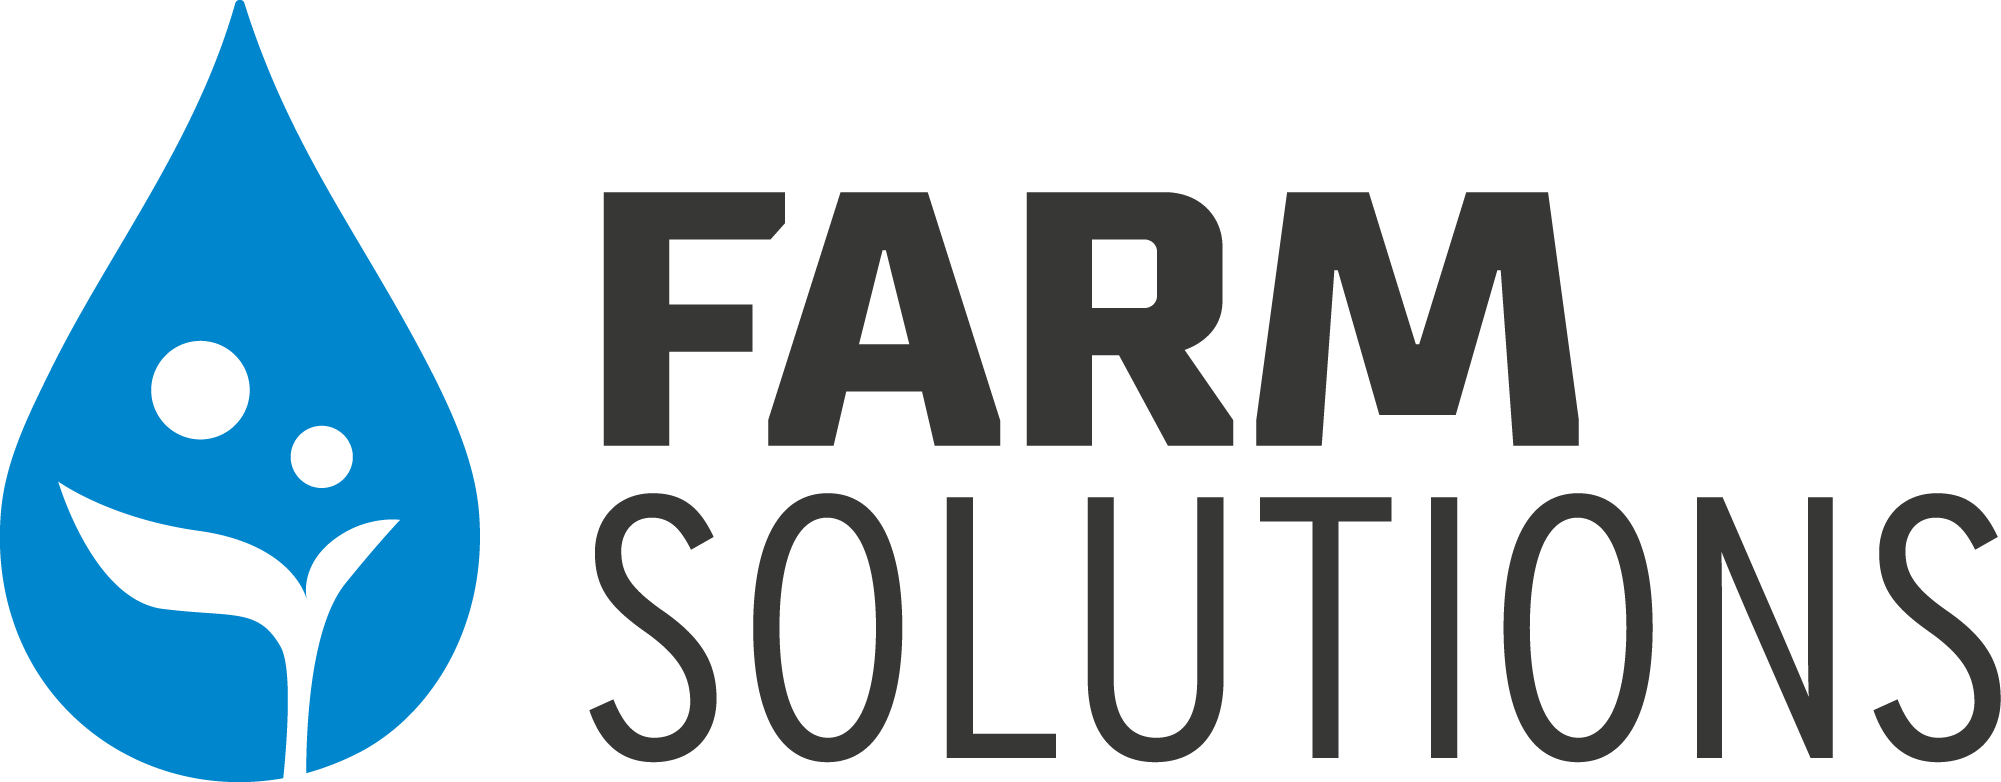 Farmsolutions